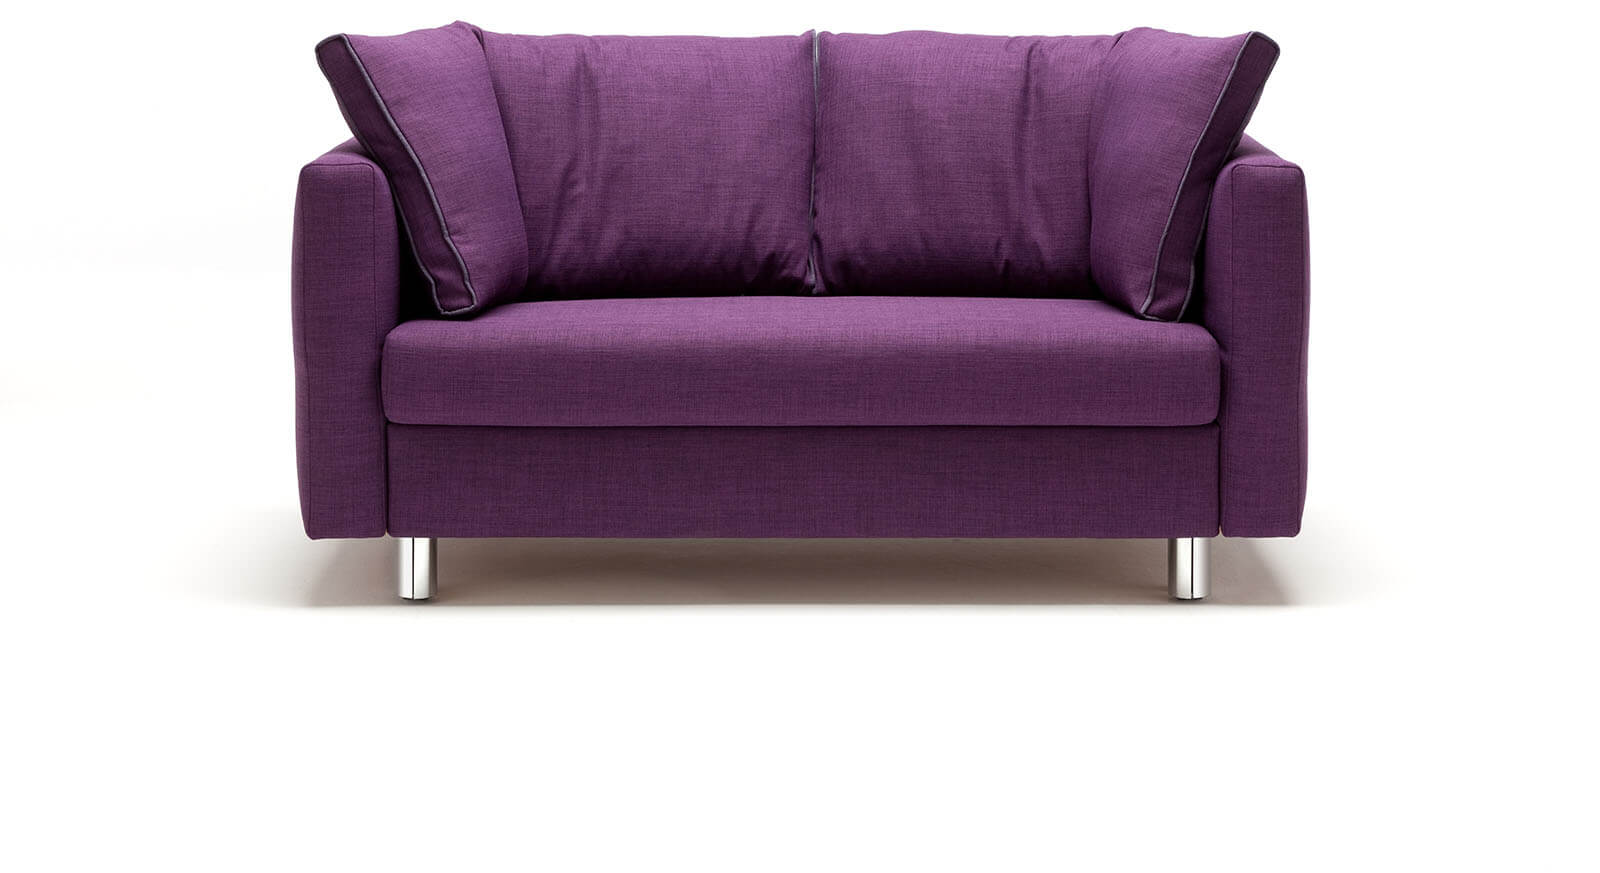 Malou sofa bed for Sofa bed 130cm wide